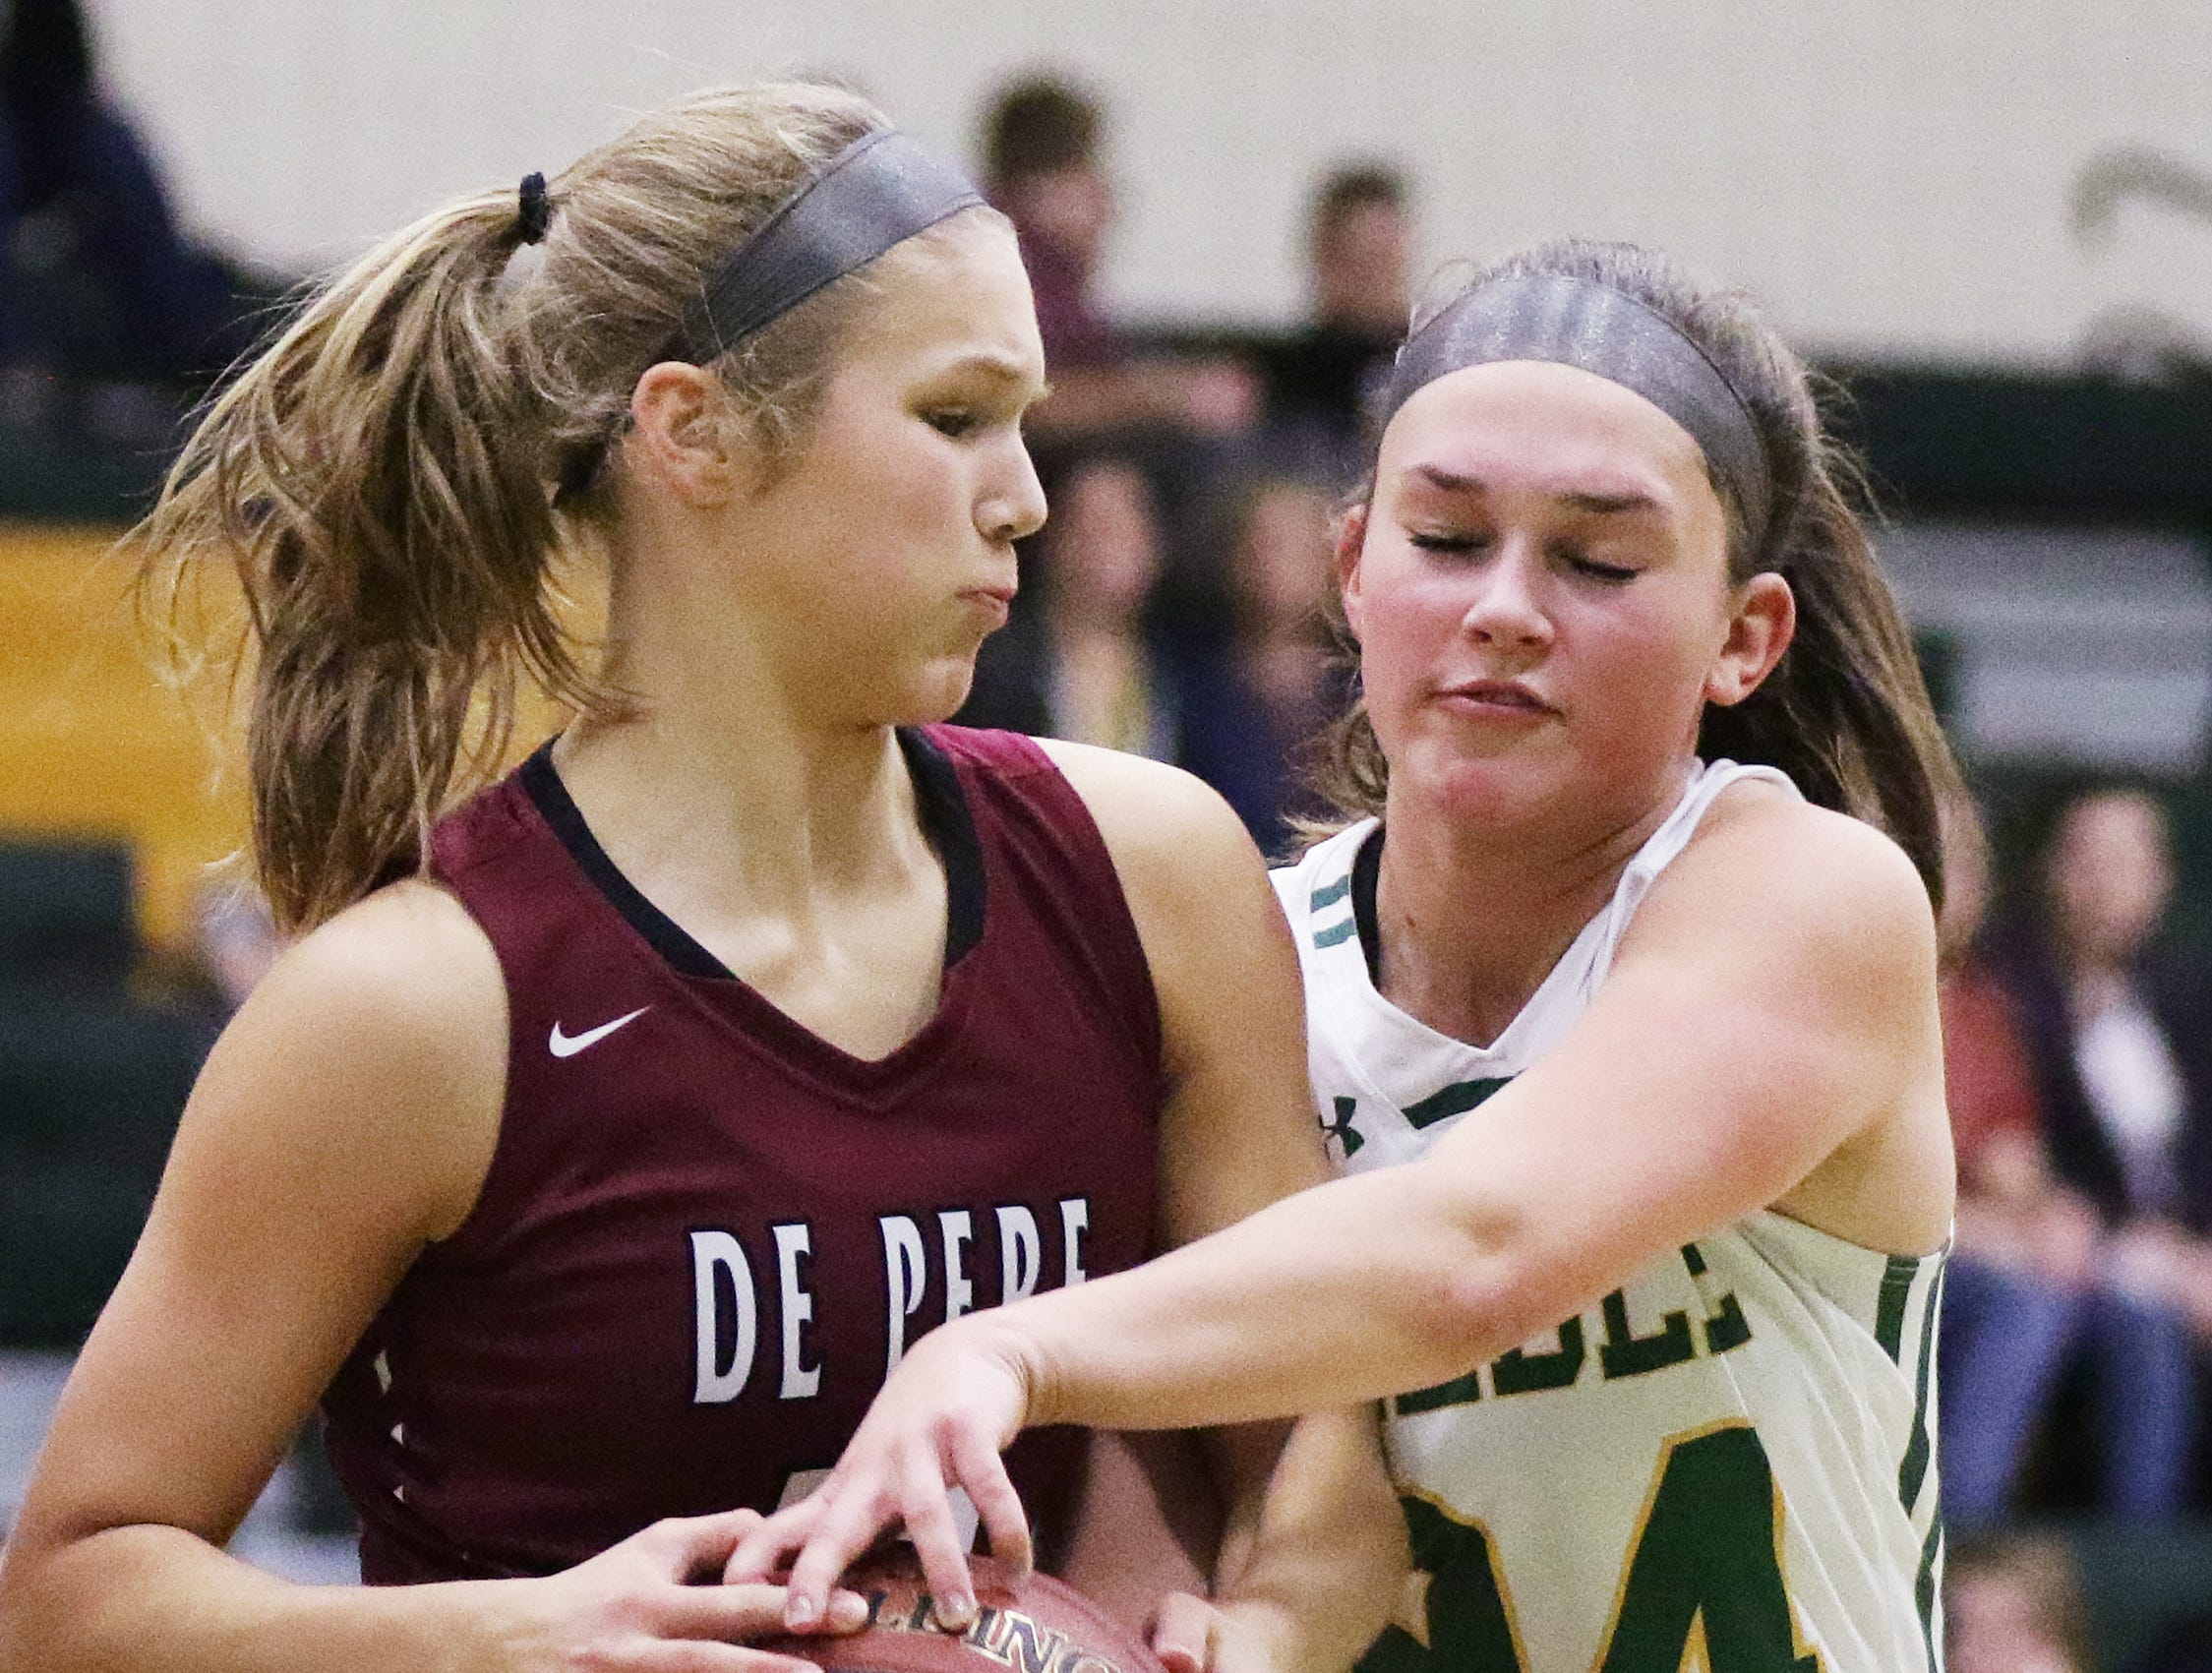 Green Bay Preble's Ella Bialkowski (24) fights for a rebound against De Pere's Keely Dorn (13) in a girls basketball game at Preble high school on Tuesday, January 8, 2019 in Green Bay, Wis.